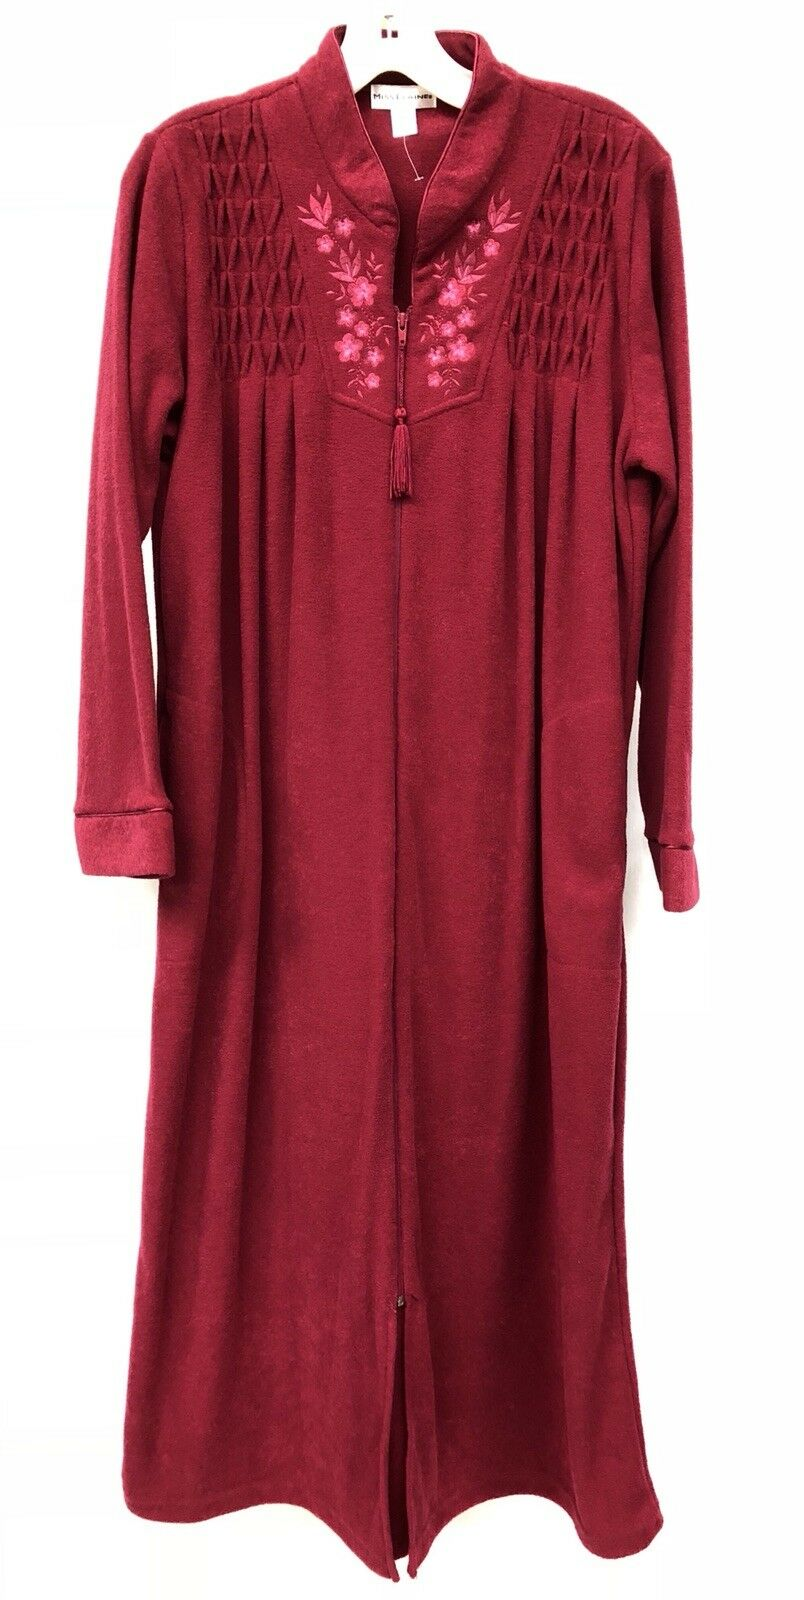 Miss Elaine Size Medium Cranberry Red Terry Maxi Bath Robe Fleece Lined Womens